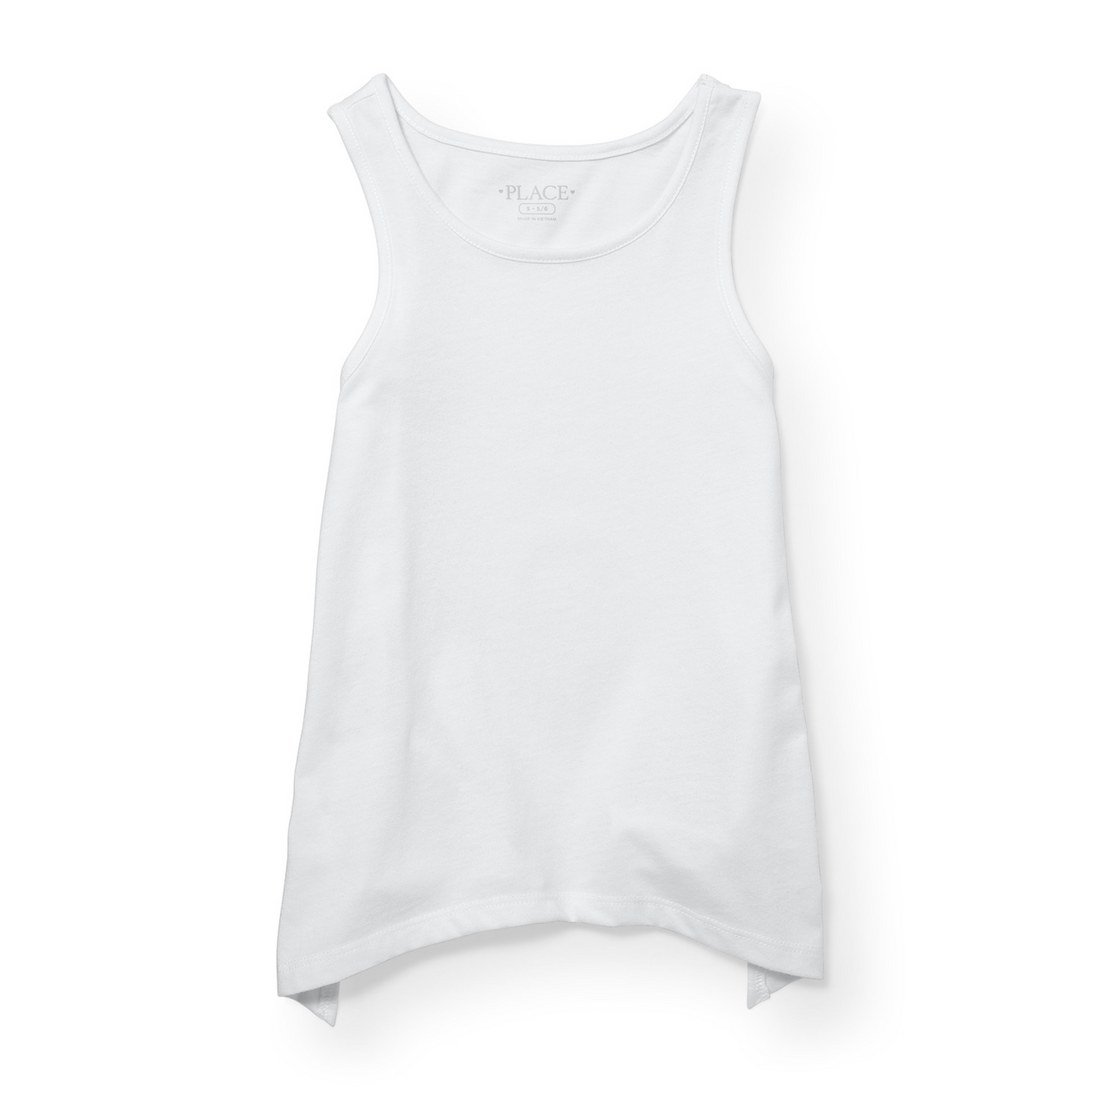 The Children's Place Big Girls' Basic Fashion Tank Tops The Children' s Place